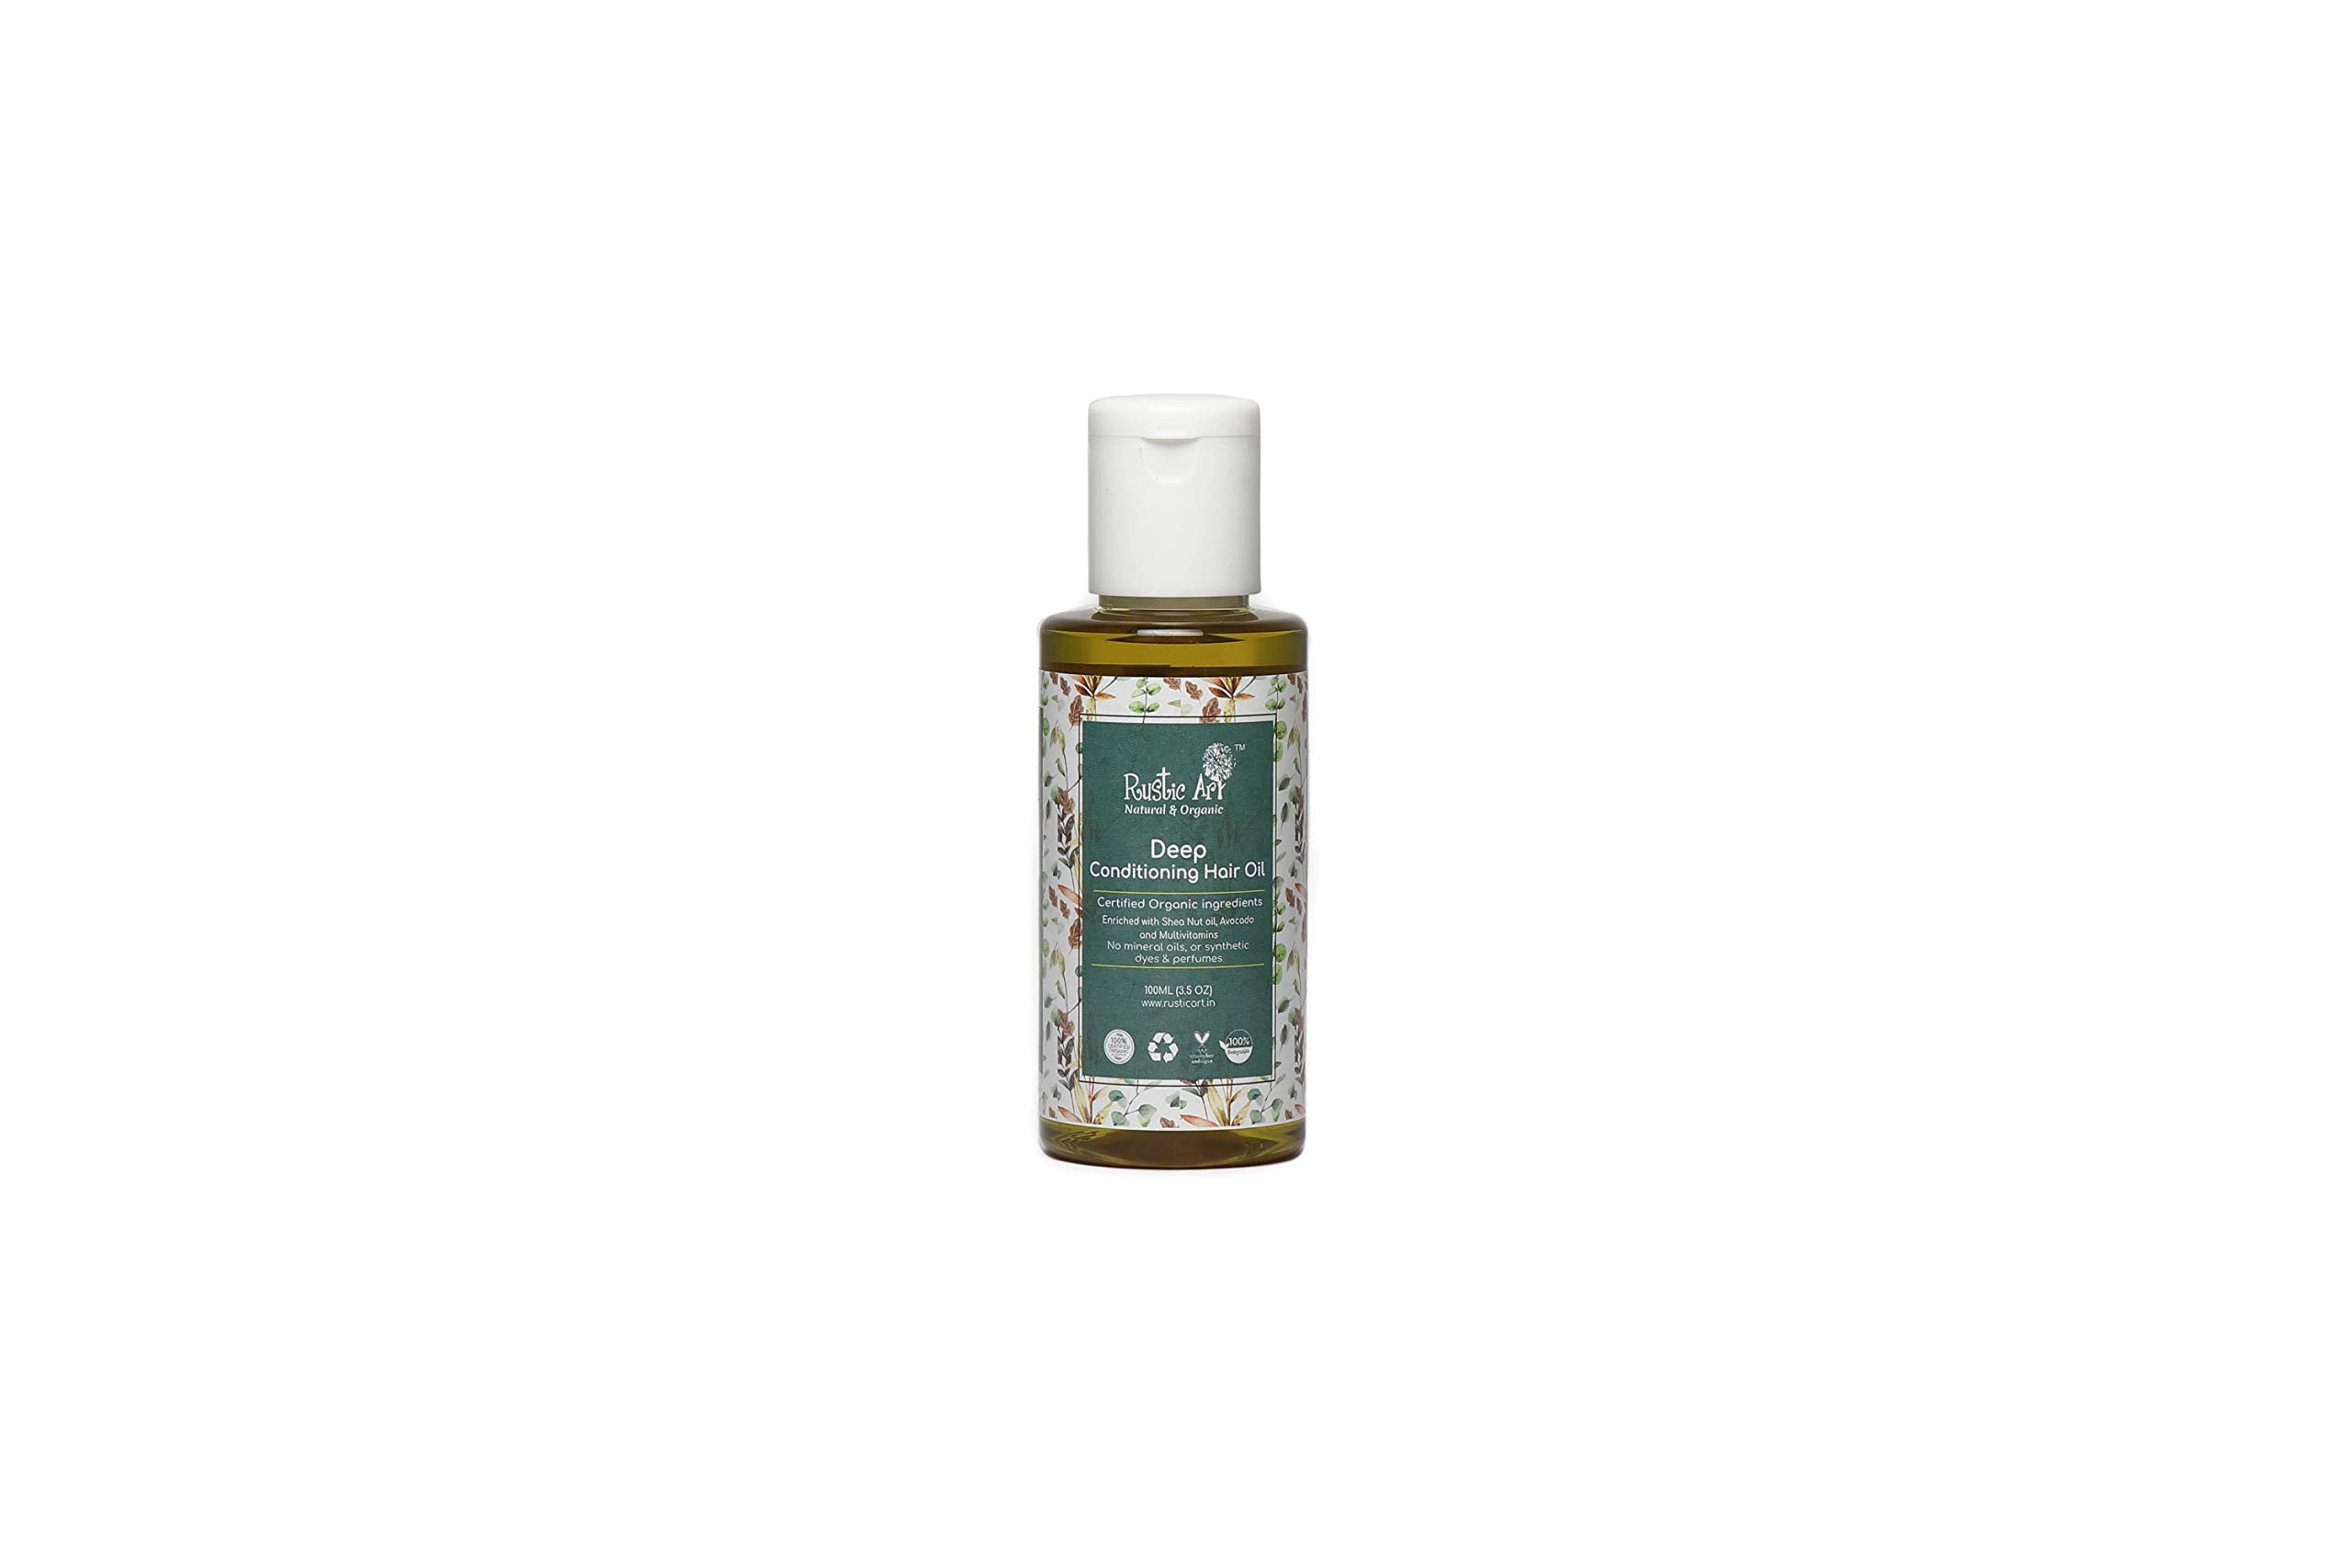 Rustic Art Organic Deep Conditioning Hair Oil, 100 Ml